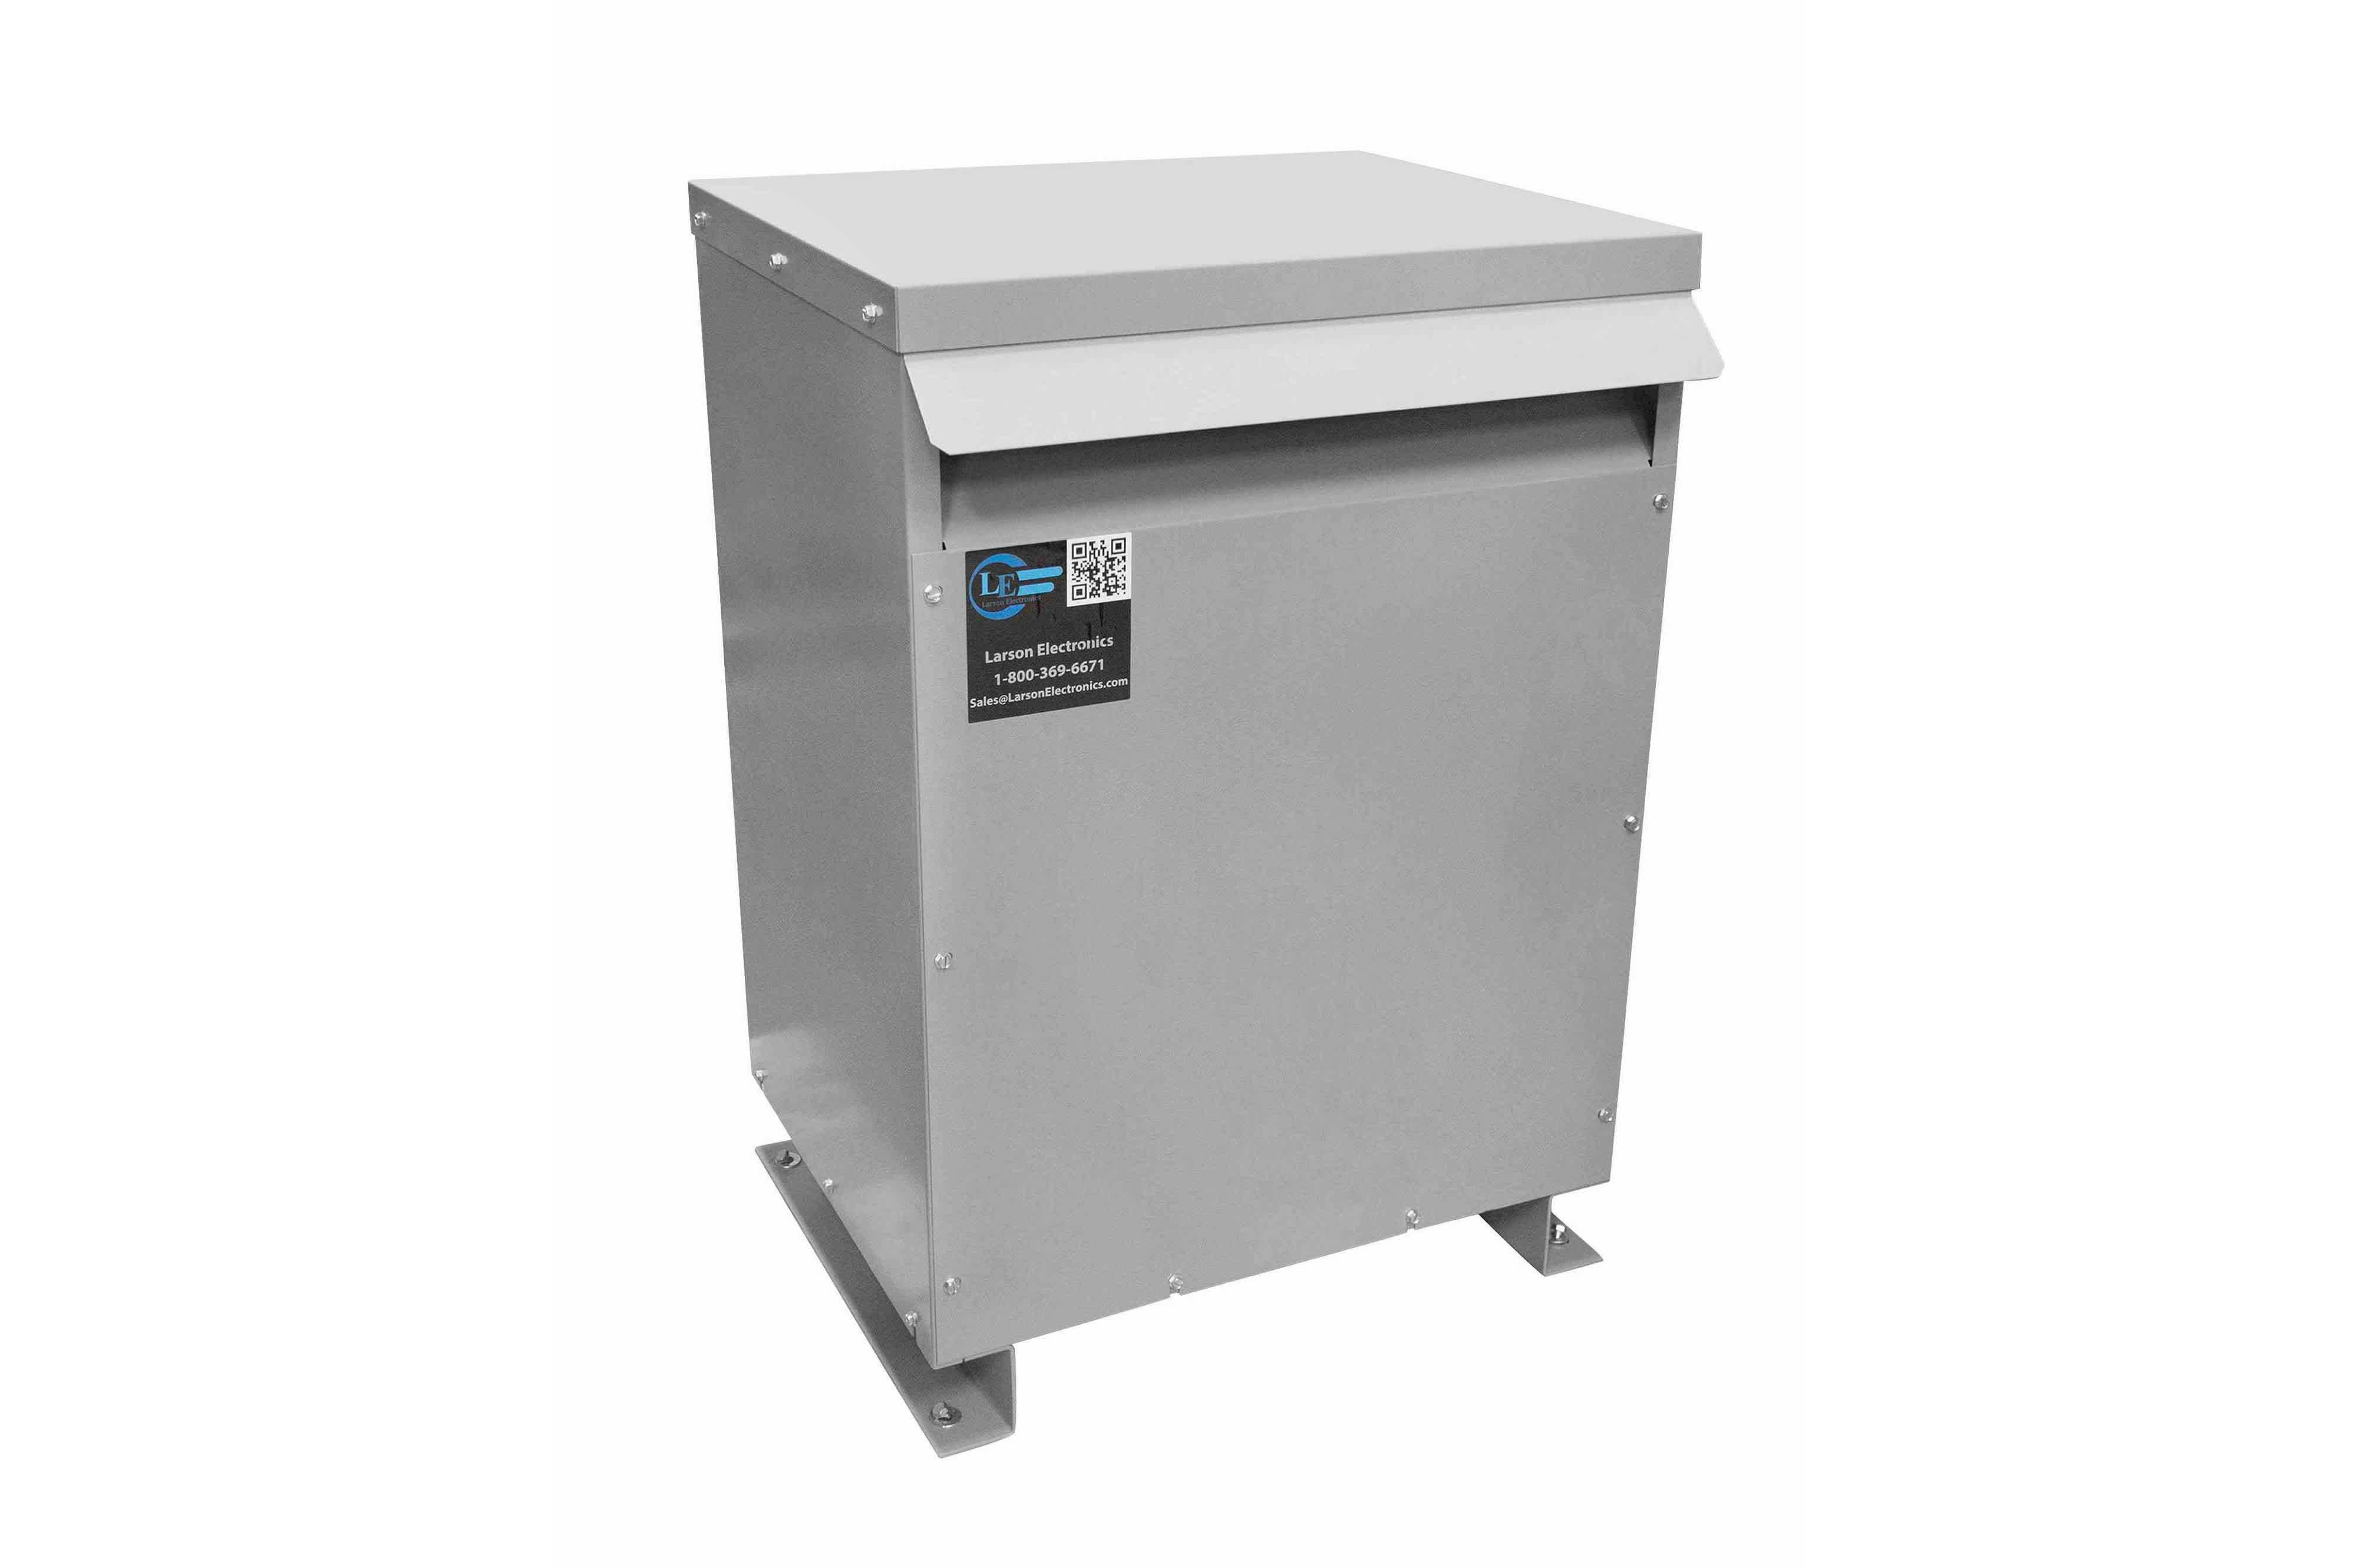 750 kVA 3PH DOE Transformer, 208V Delta Primary, 240V/120 Delta Secondary, N3R, Ventilated, 60 Hz